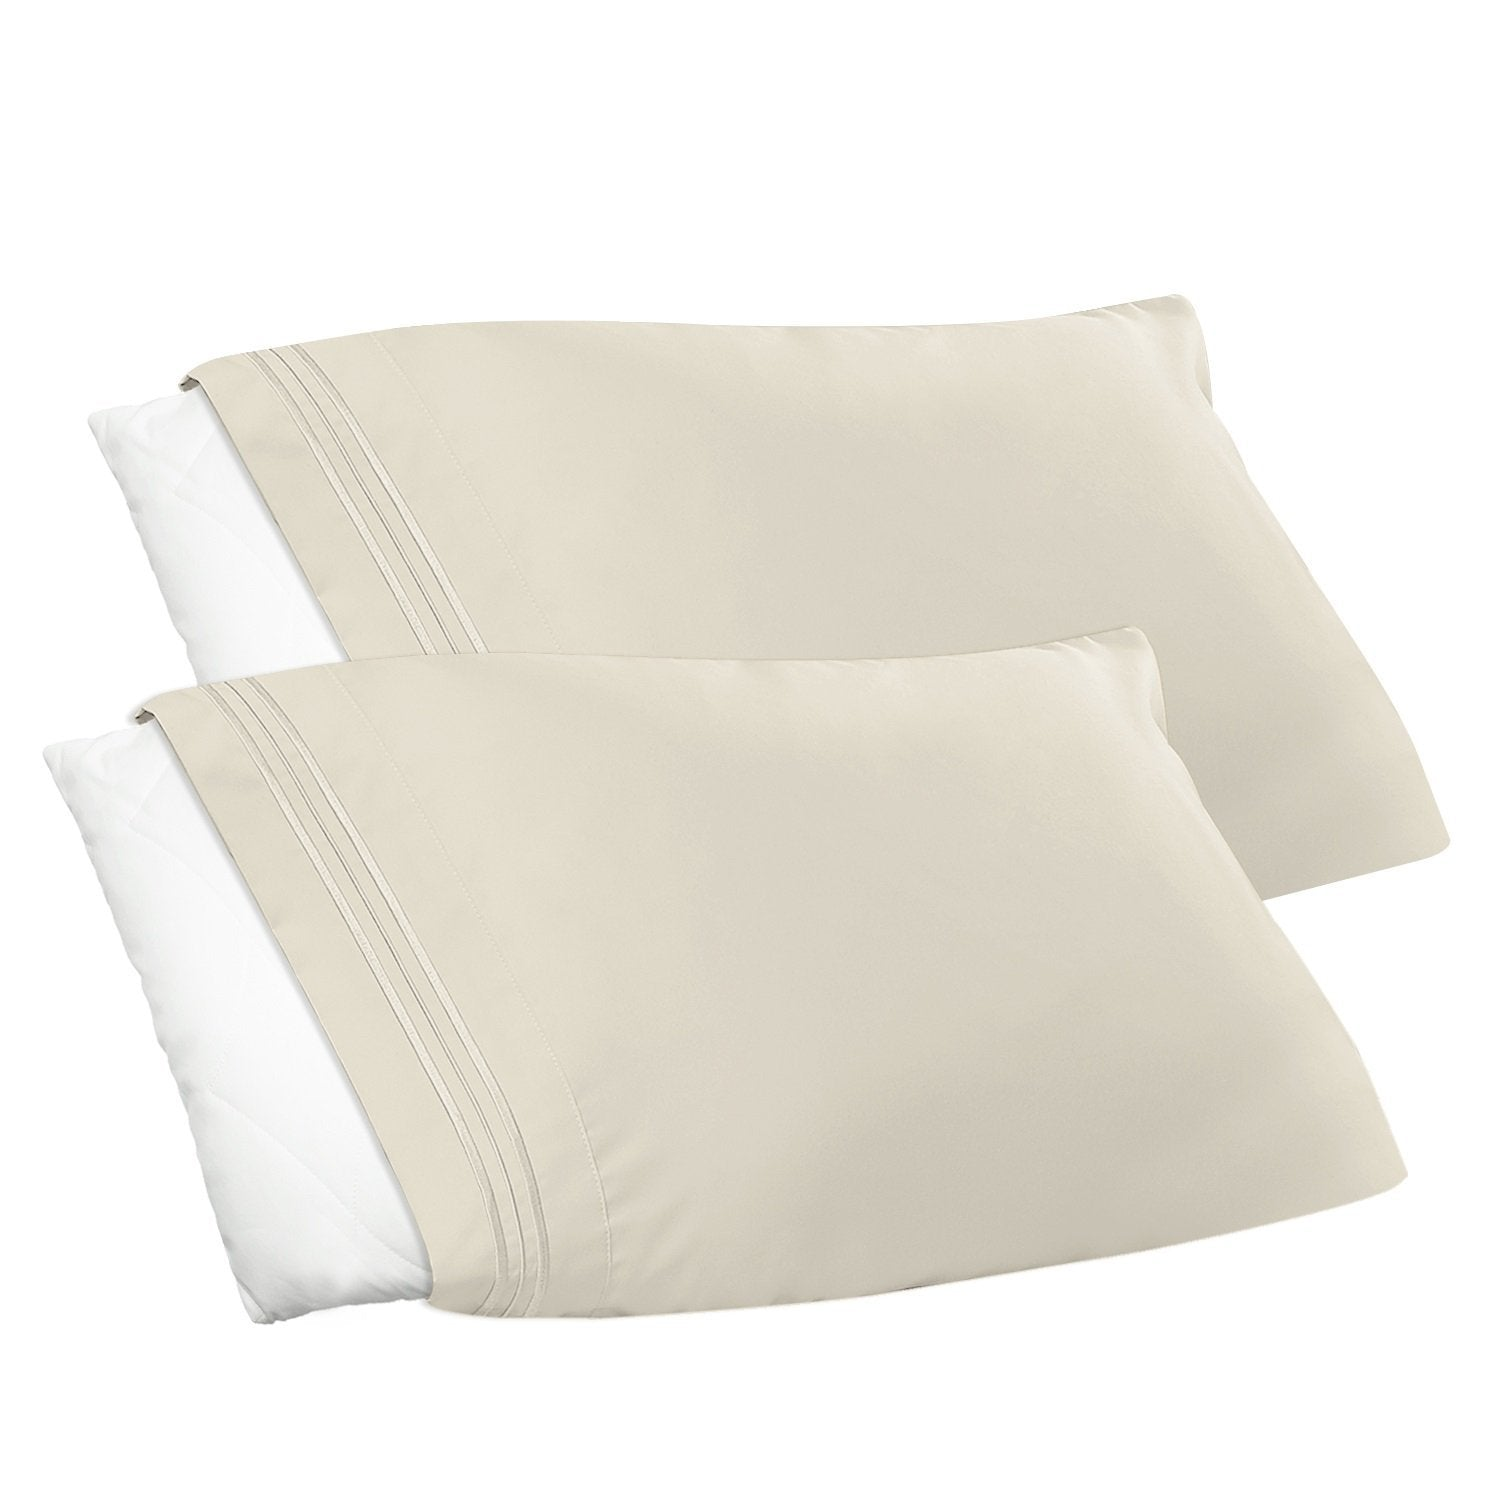 Nestl 1800 Series Premier 2pc Pillow Cases